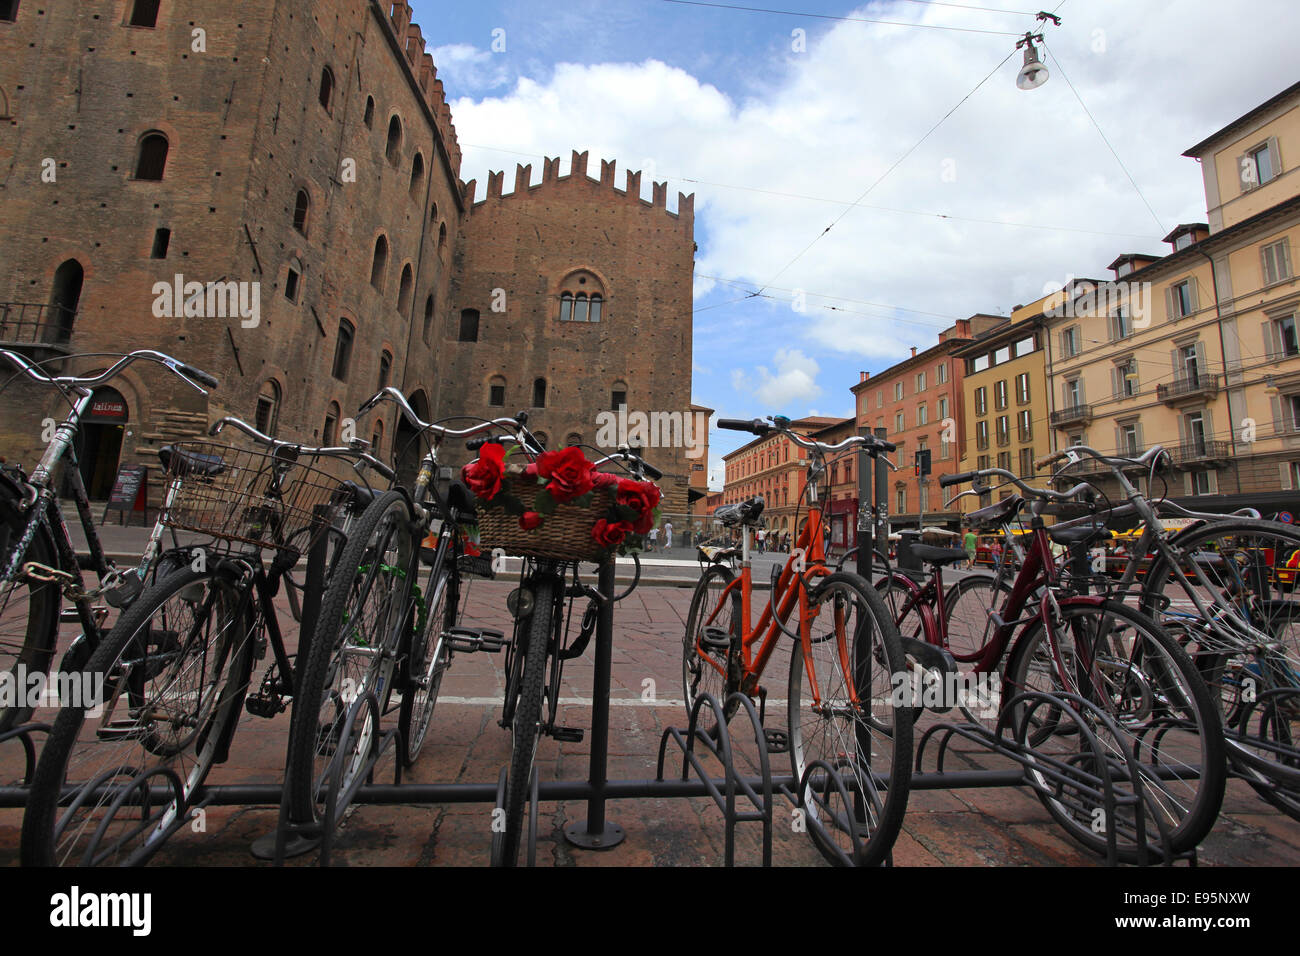 """Row of bicycles parked in """"Piazza Re Enzo"""". Bologna, Emilia Romagna, Italy. Stock Photo"""